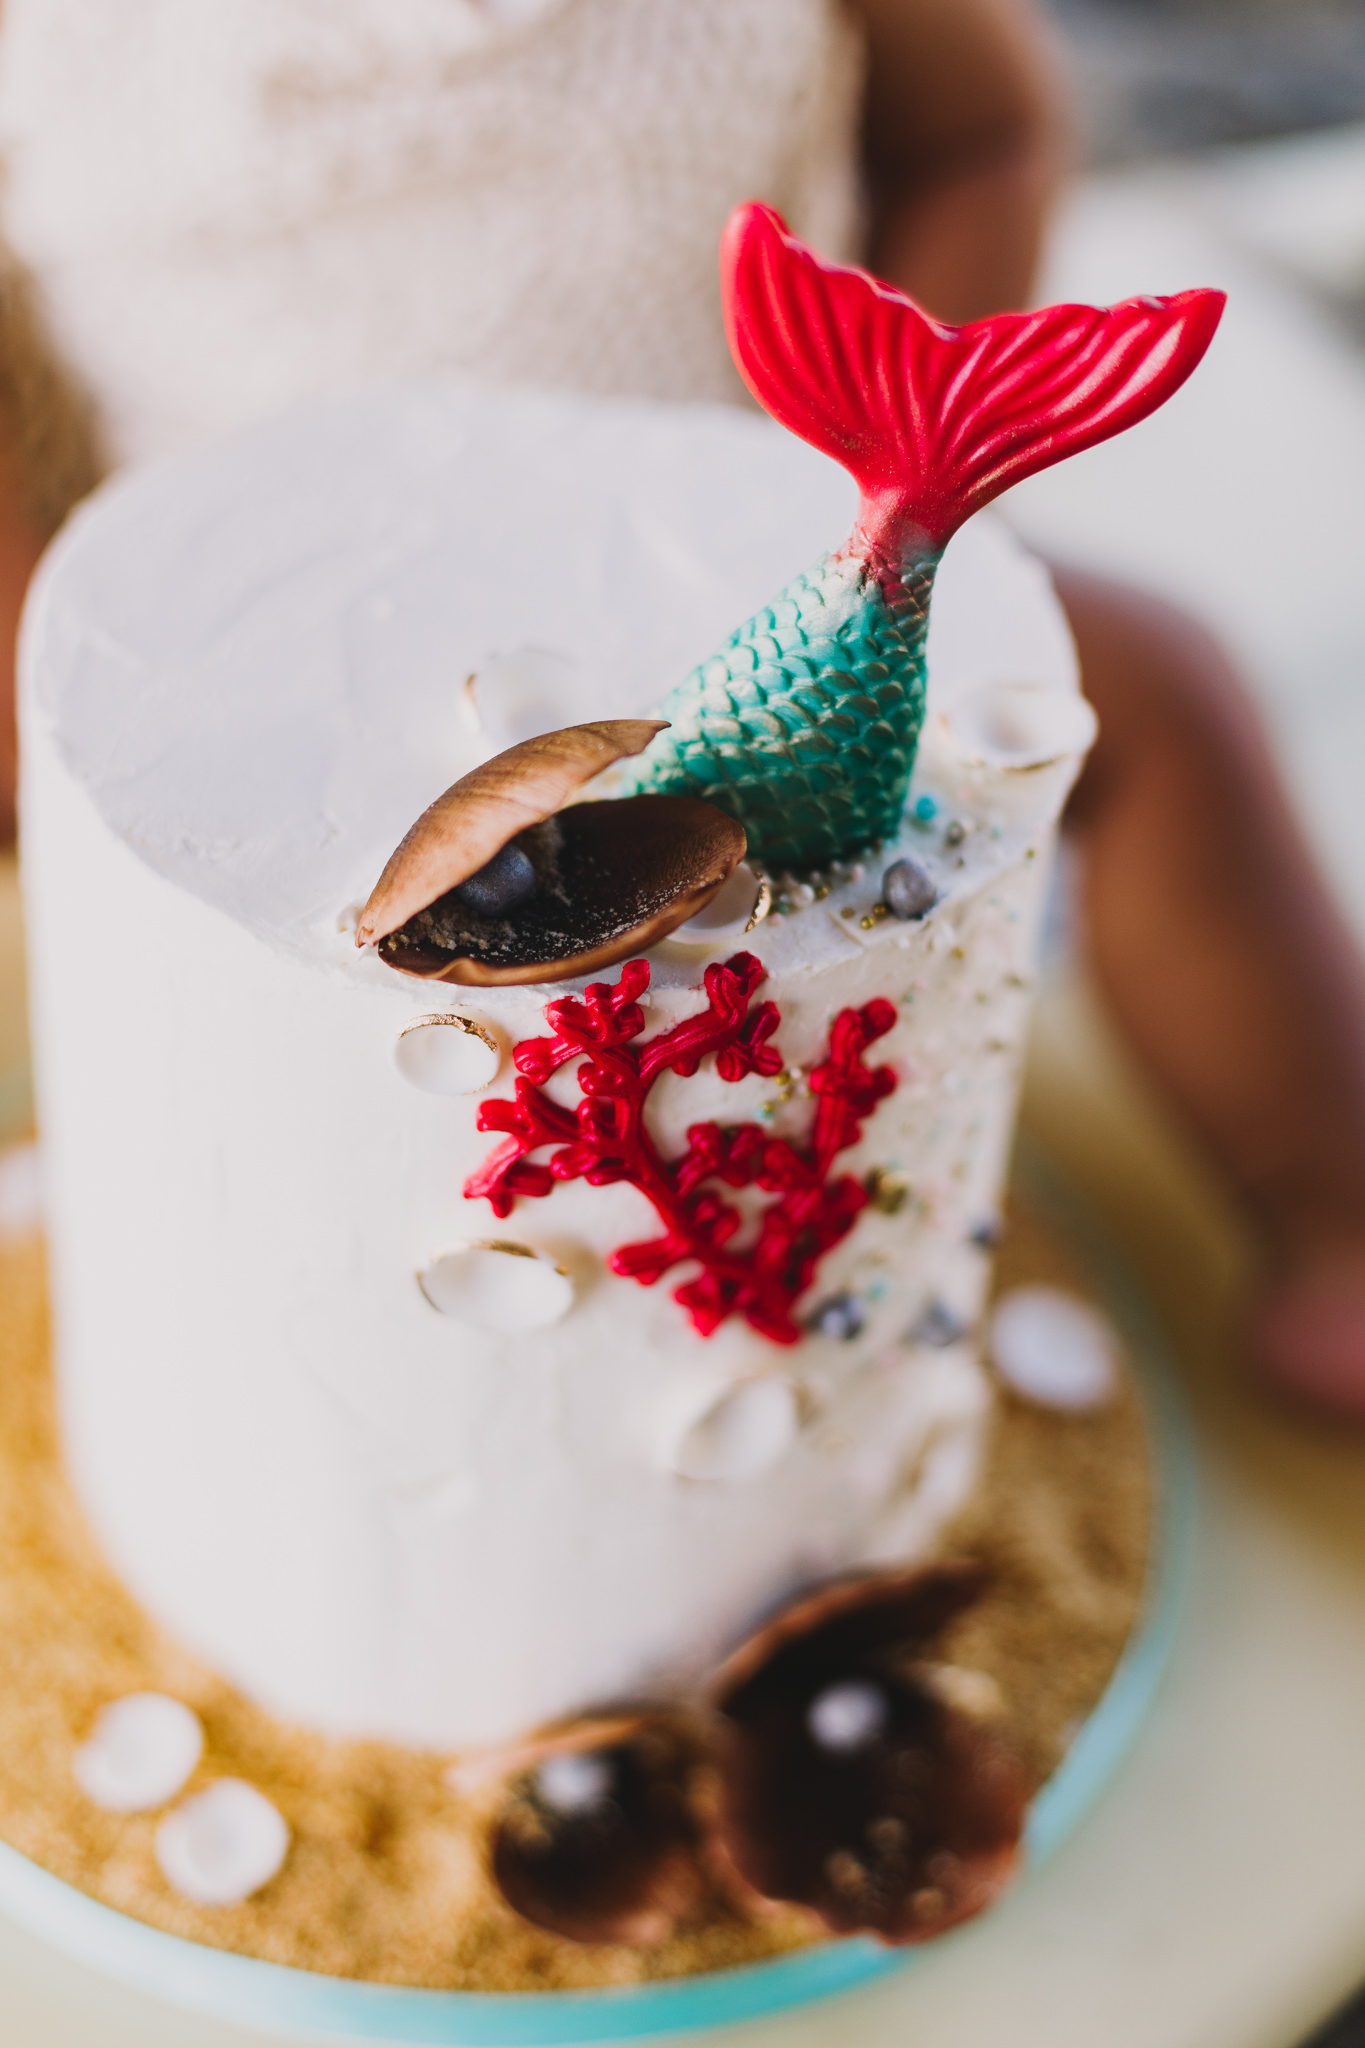 Archer Inspired Photography Cake Smash First Birthday Lifestyle Natural Light Documentary Family Photographer-10.jpg